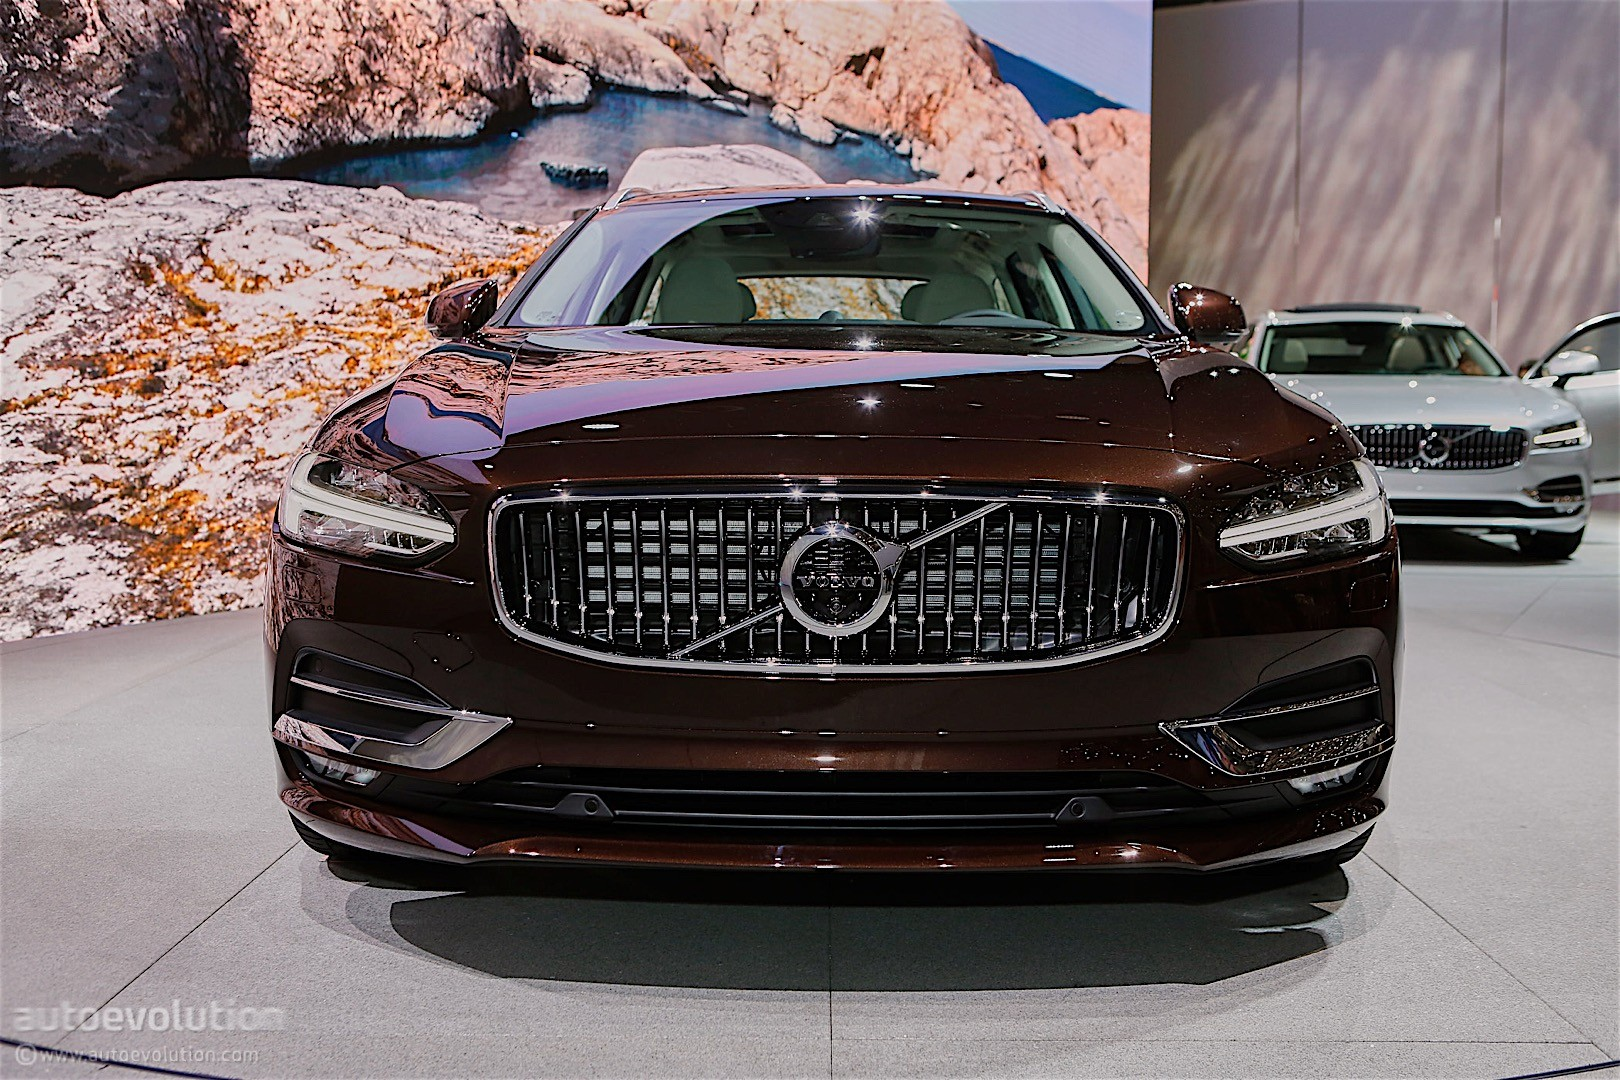 Volvo's Swedish Corner of Geneva Reveals V40 Facelift and New V90 - autoevolution